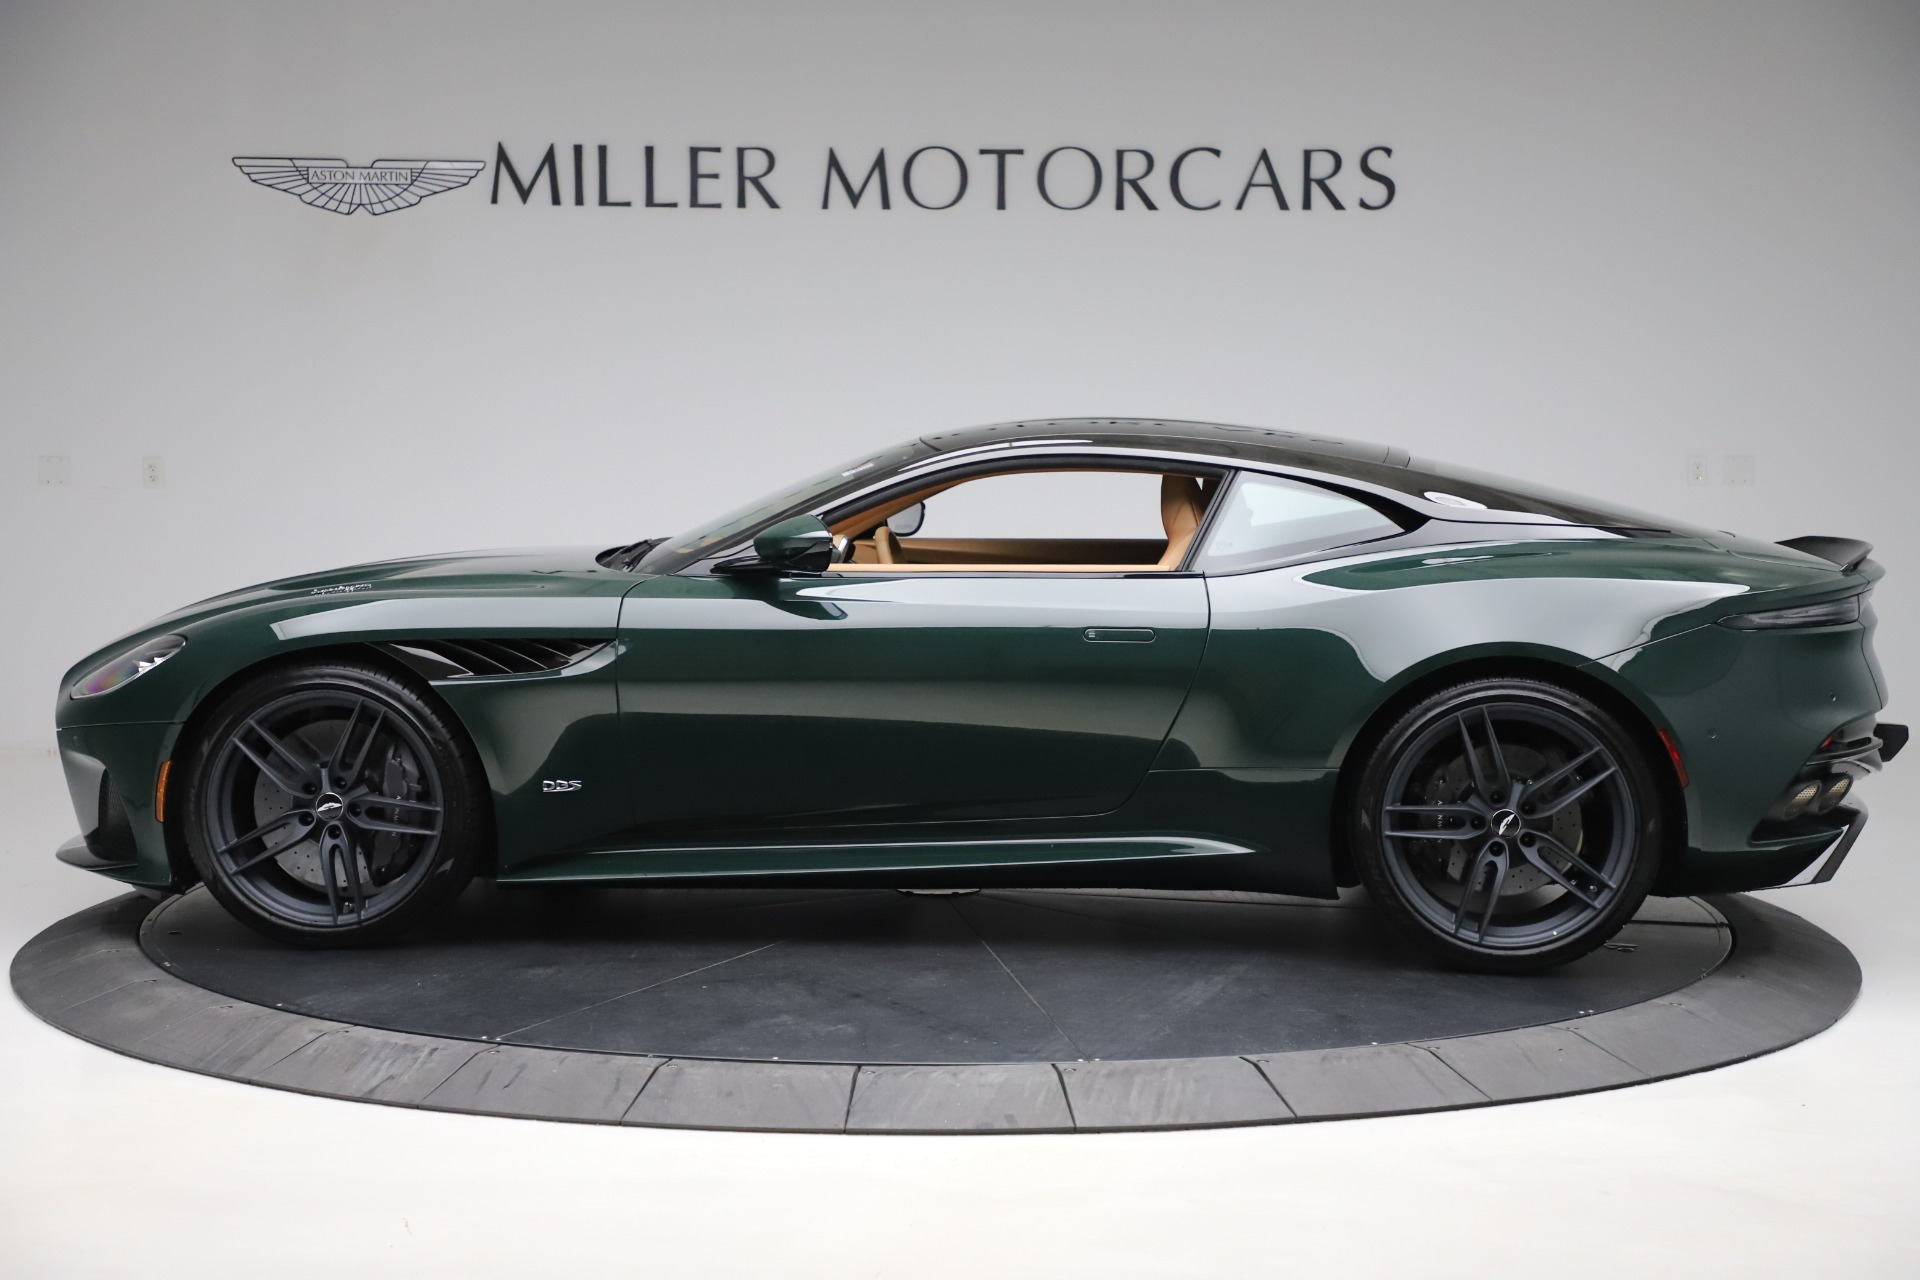 New 2020 Aston Martin DBS Superleggera For Sale In Westport, CT 3550_p3